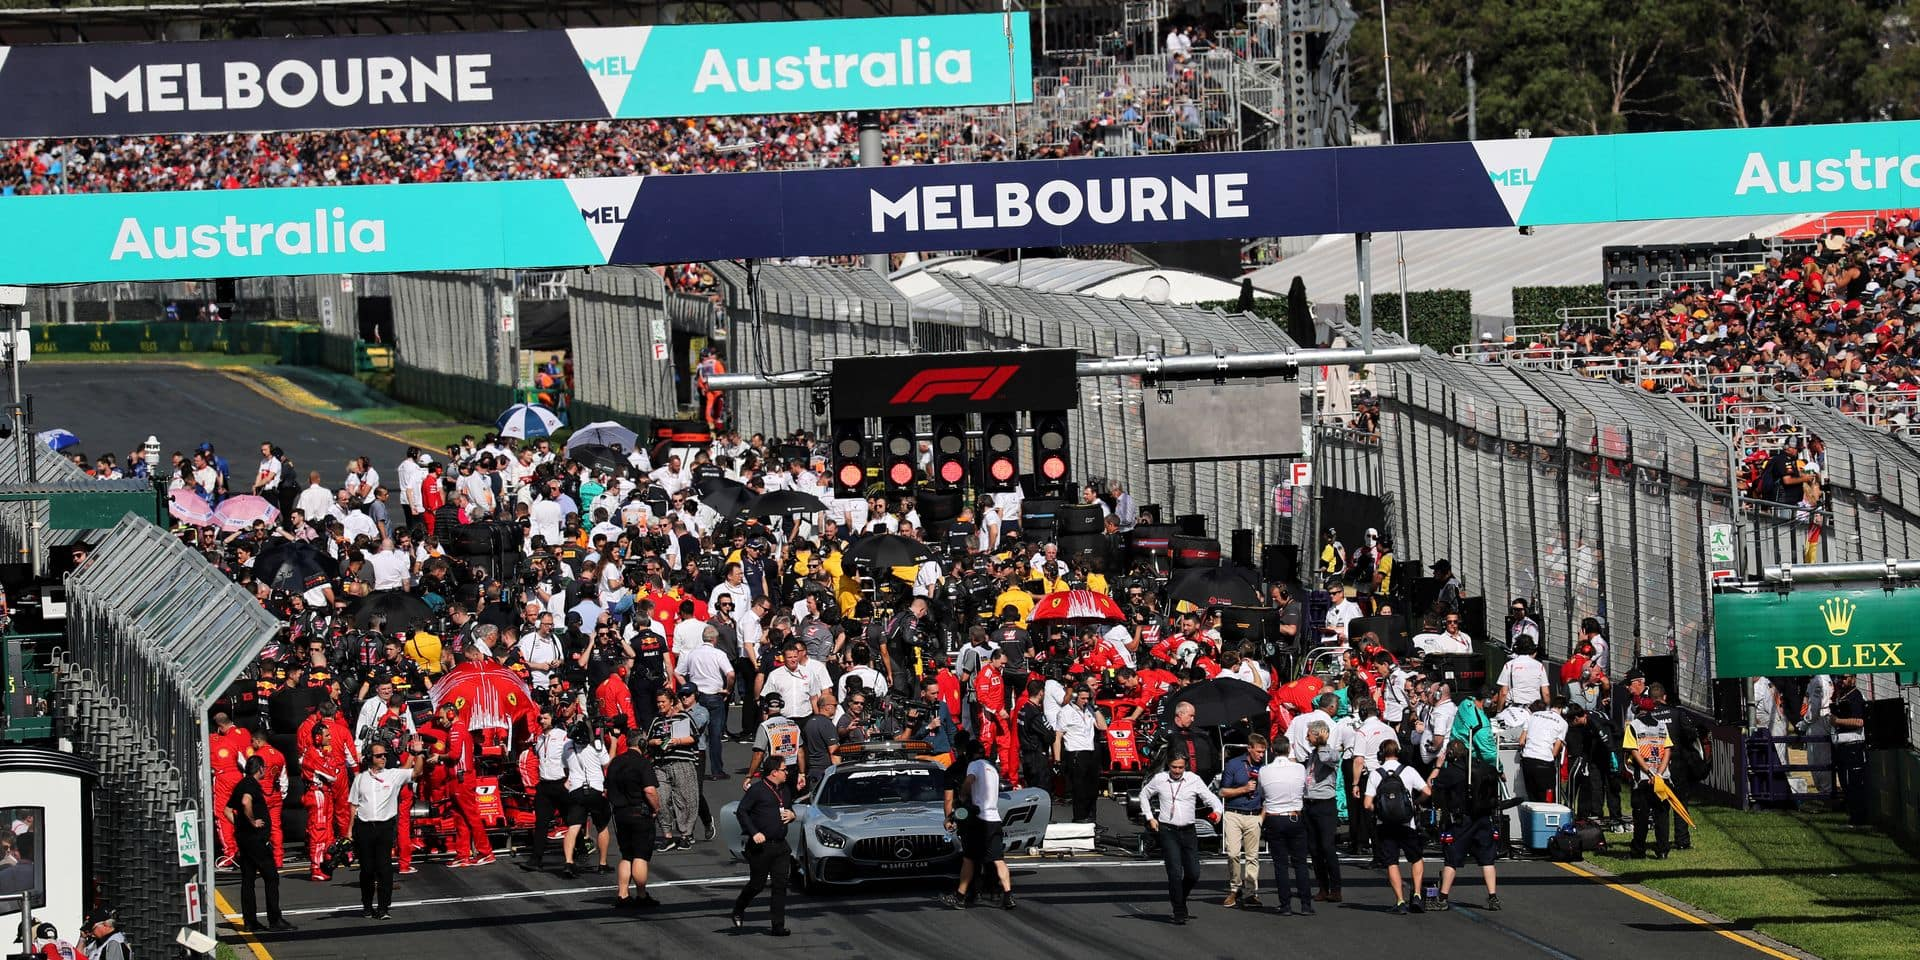 Le Grand Prix d'Australie : pourquoi le Down Under a-t-il la cote ?